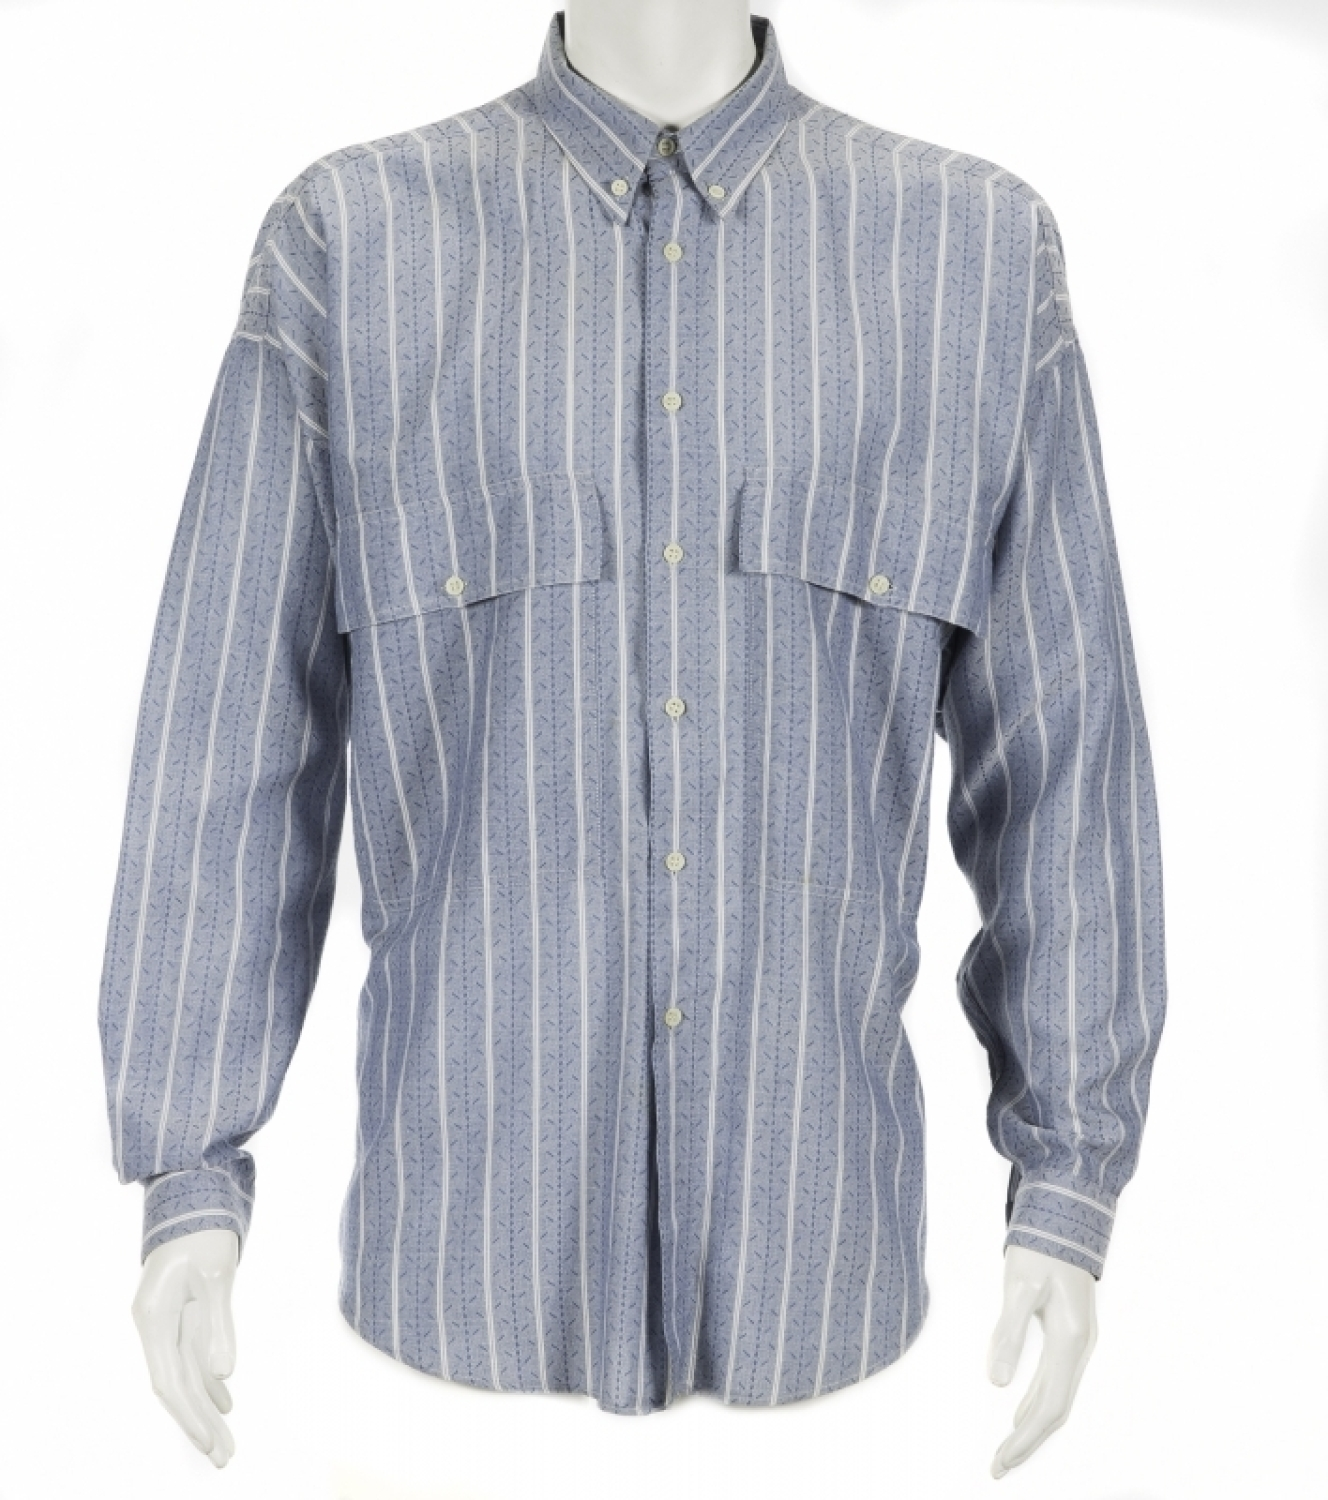 STEVE JOBS VERSACE SHIRT - Current price: $350